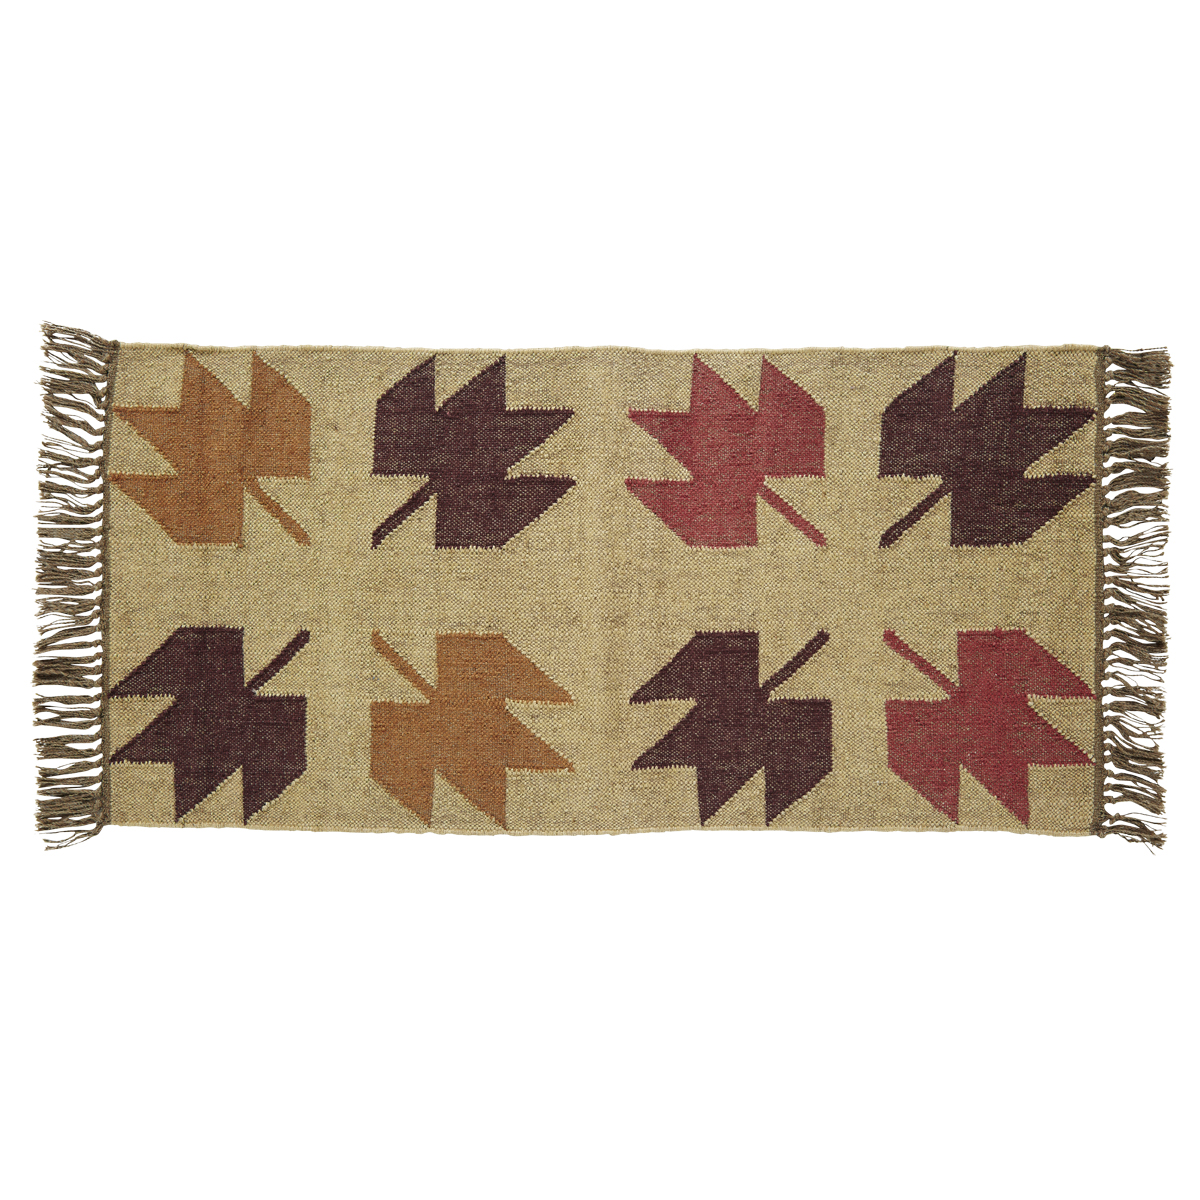 BRADDOCK Kilim Rug - 24x48 - Beige/Rust/Sable - Country Fall Leaves - VHC Brands